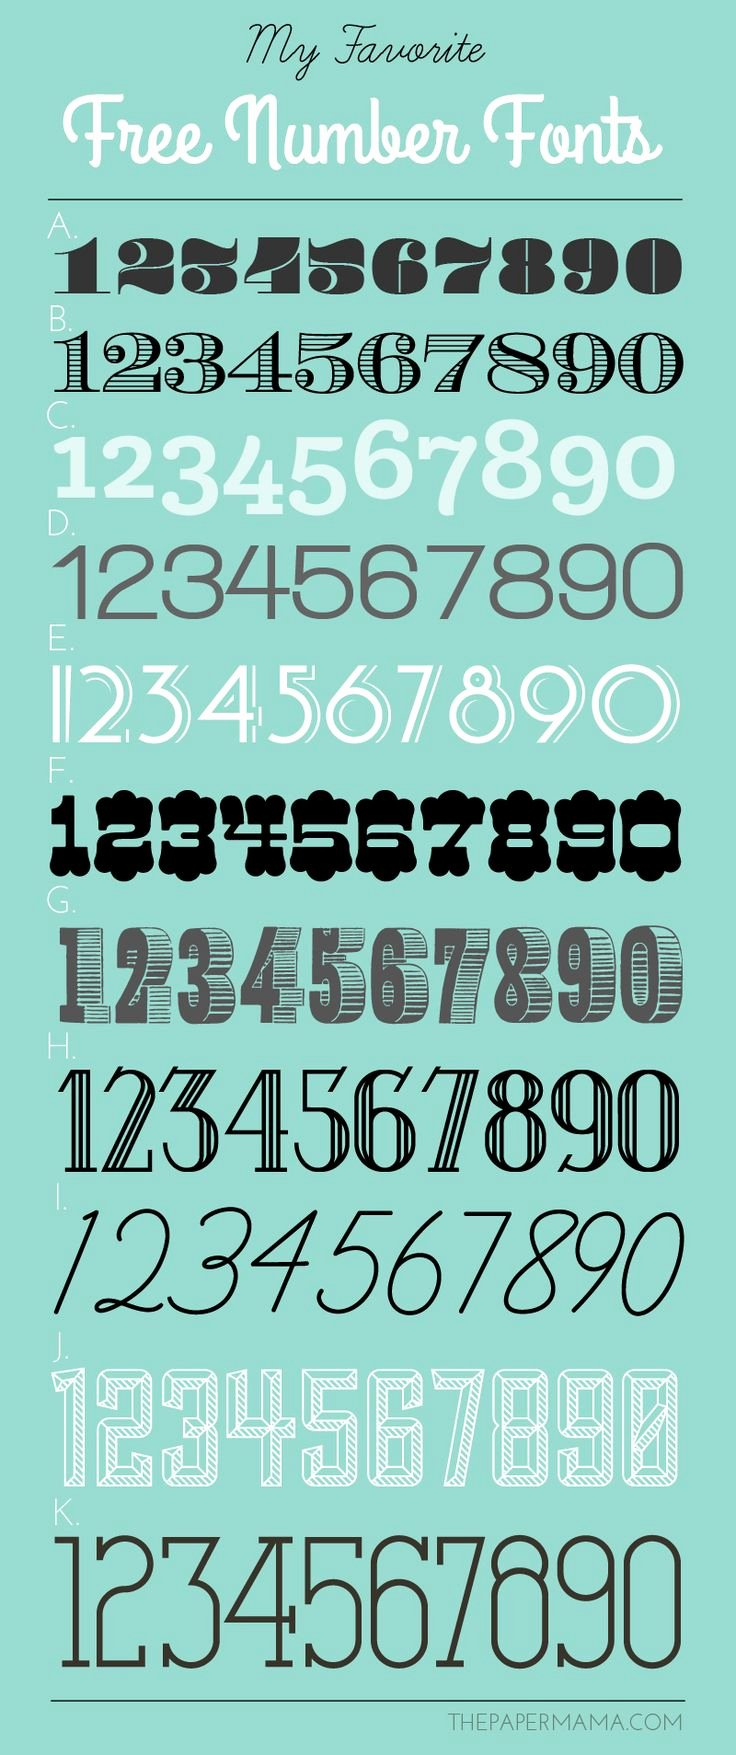 Number Fonts for Tattoos Luxury Best 25 Number Tattoo Fonts Ideas On Pinterest